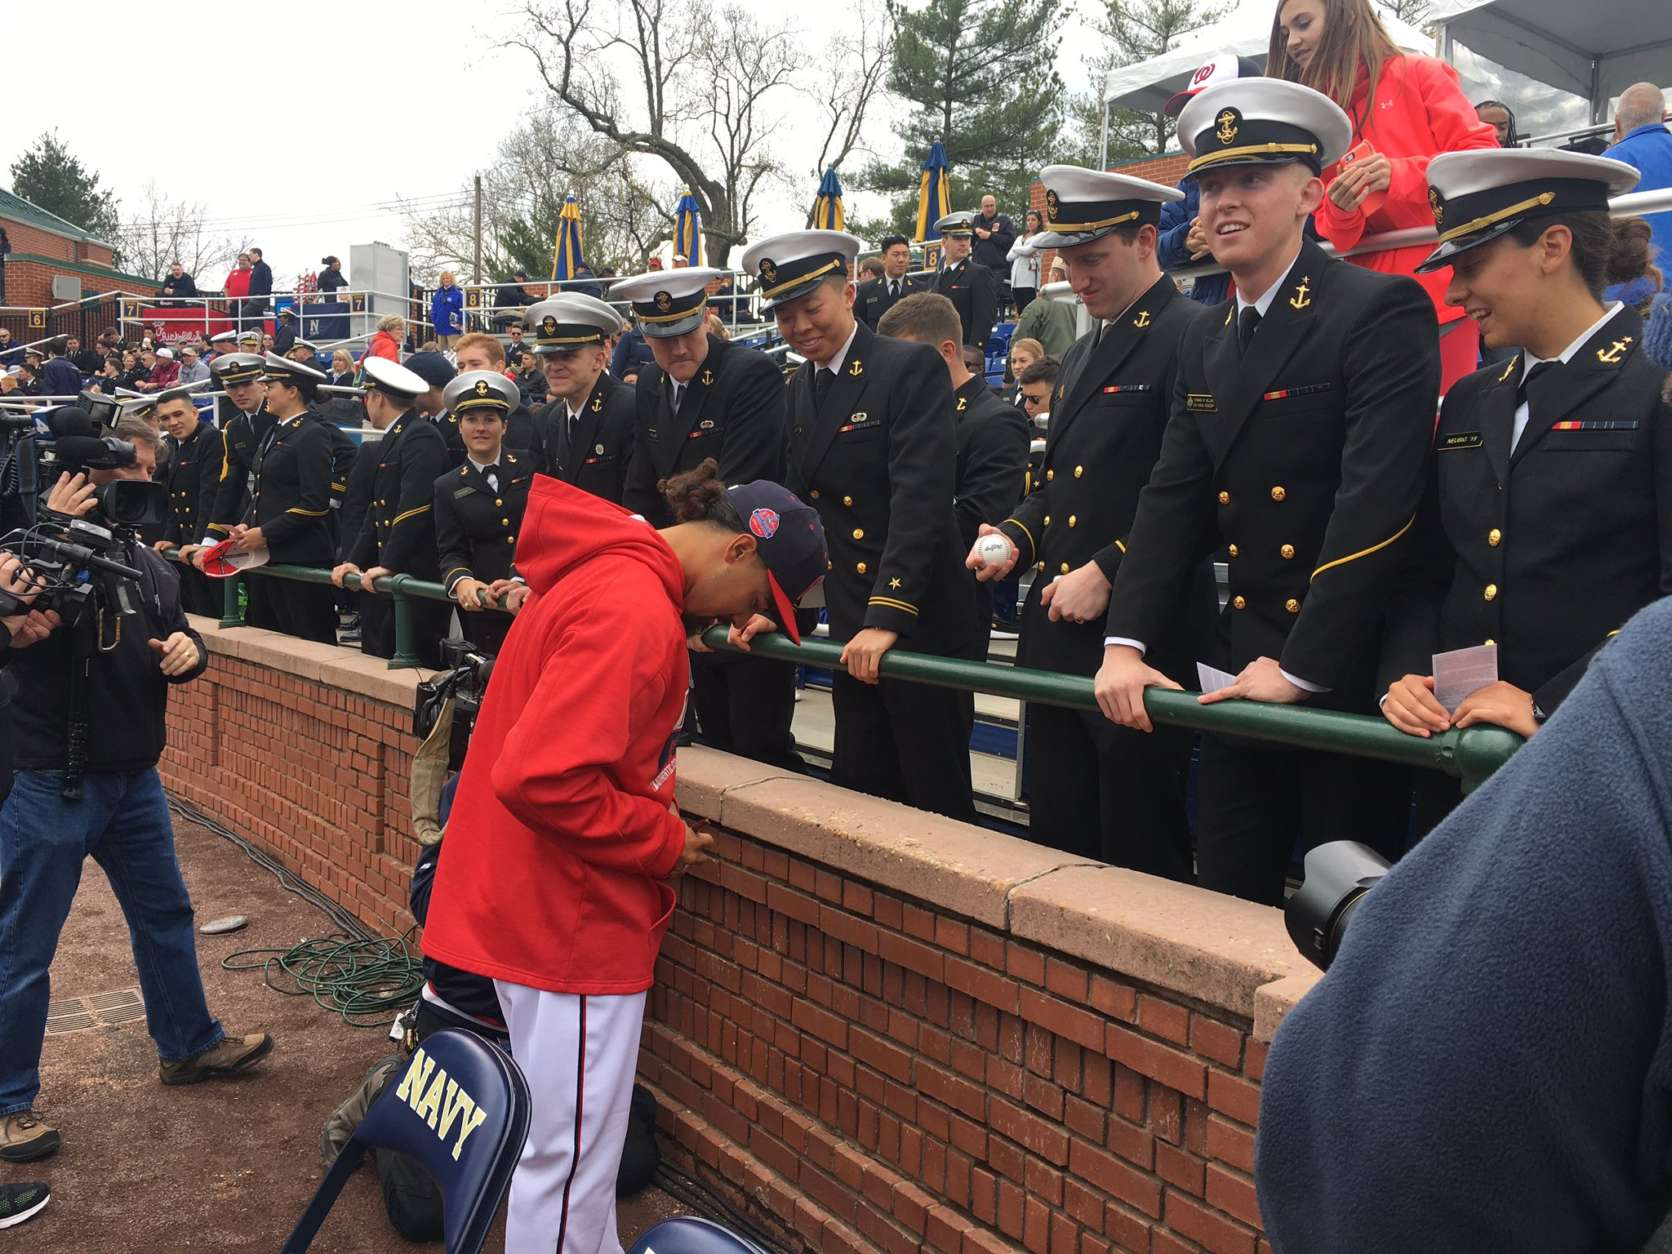 Anthony Rendon signs autographs for fans at the Naval Academy. (WTOP/George Wallace)